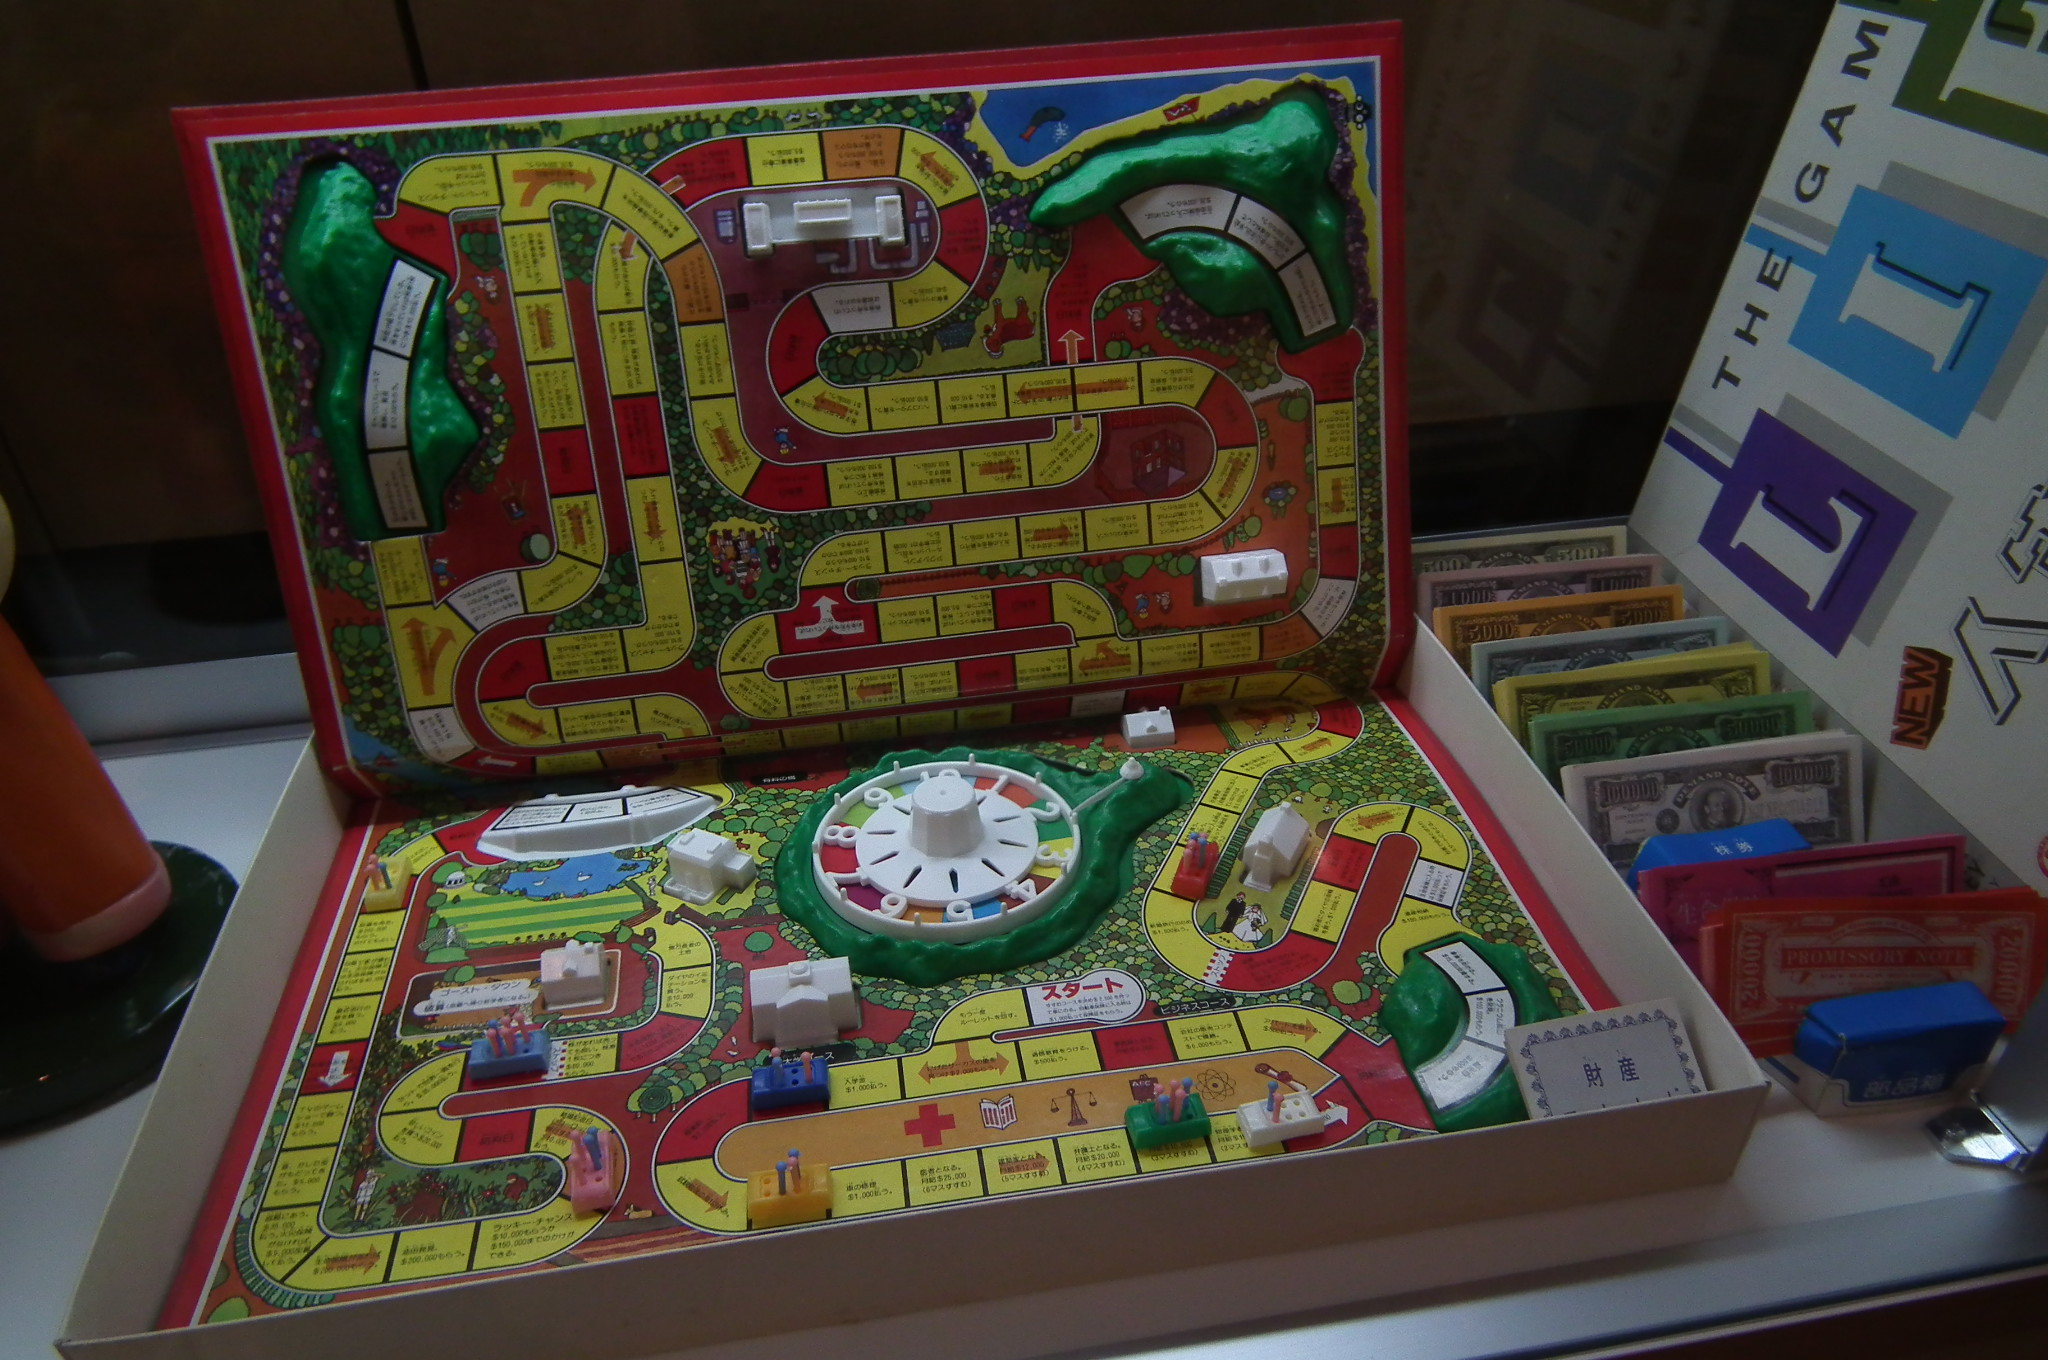 The Game of Life - Wikipedia